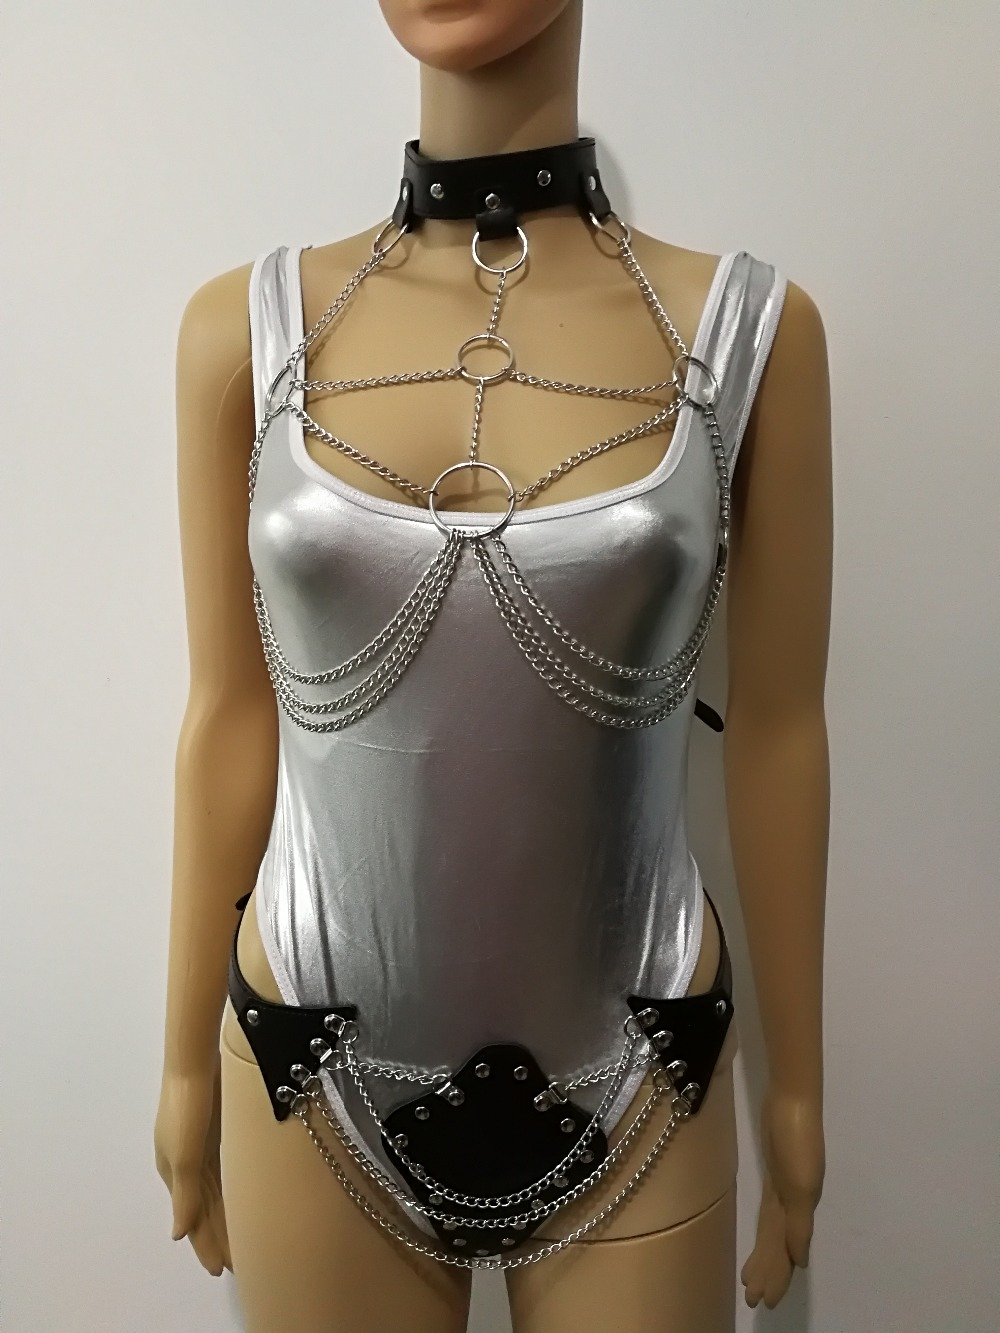 New Fashion Leather Style WRB940 Leather Harness Bondage Beach Bra Chain Collar Goth Choker Silver Necklace Jewelry Accessories ...